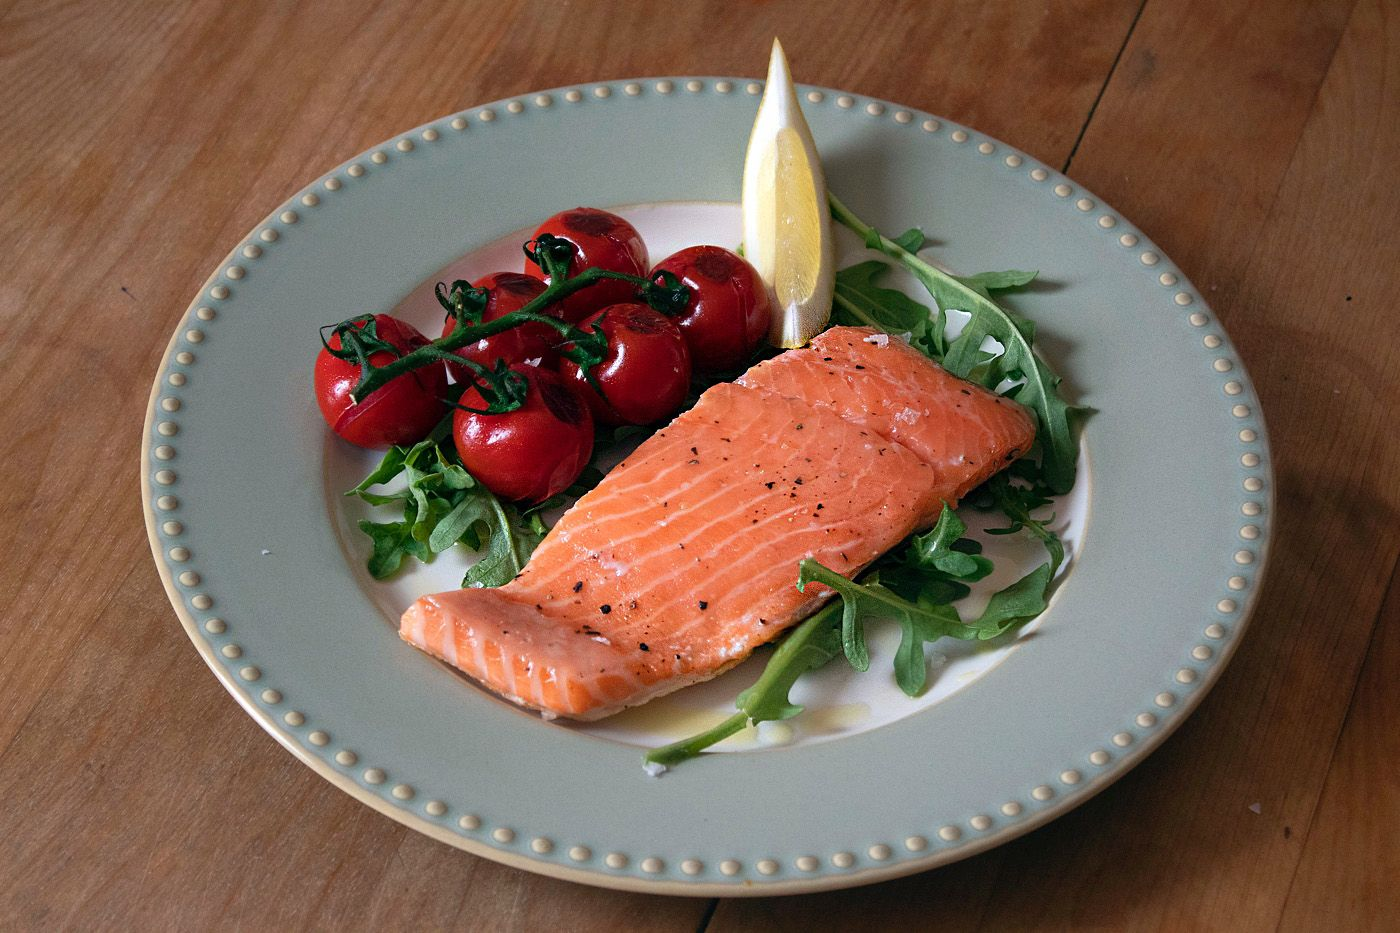 Salmon Fillet with Blistered tomatoes and crispy skin cooked on cinder grill using precise cooking